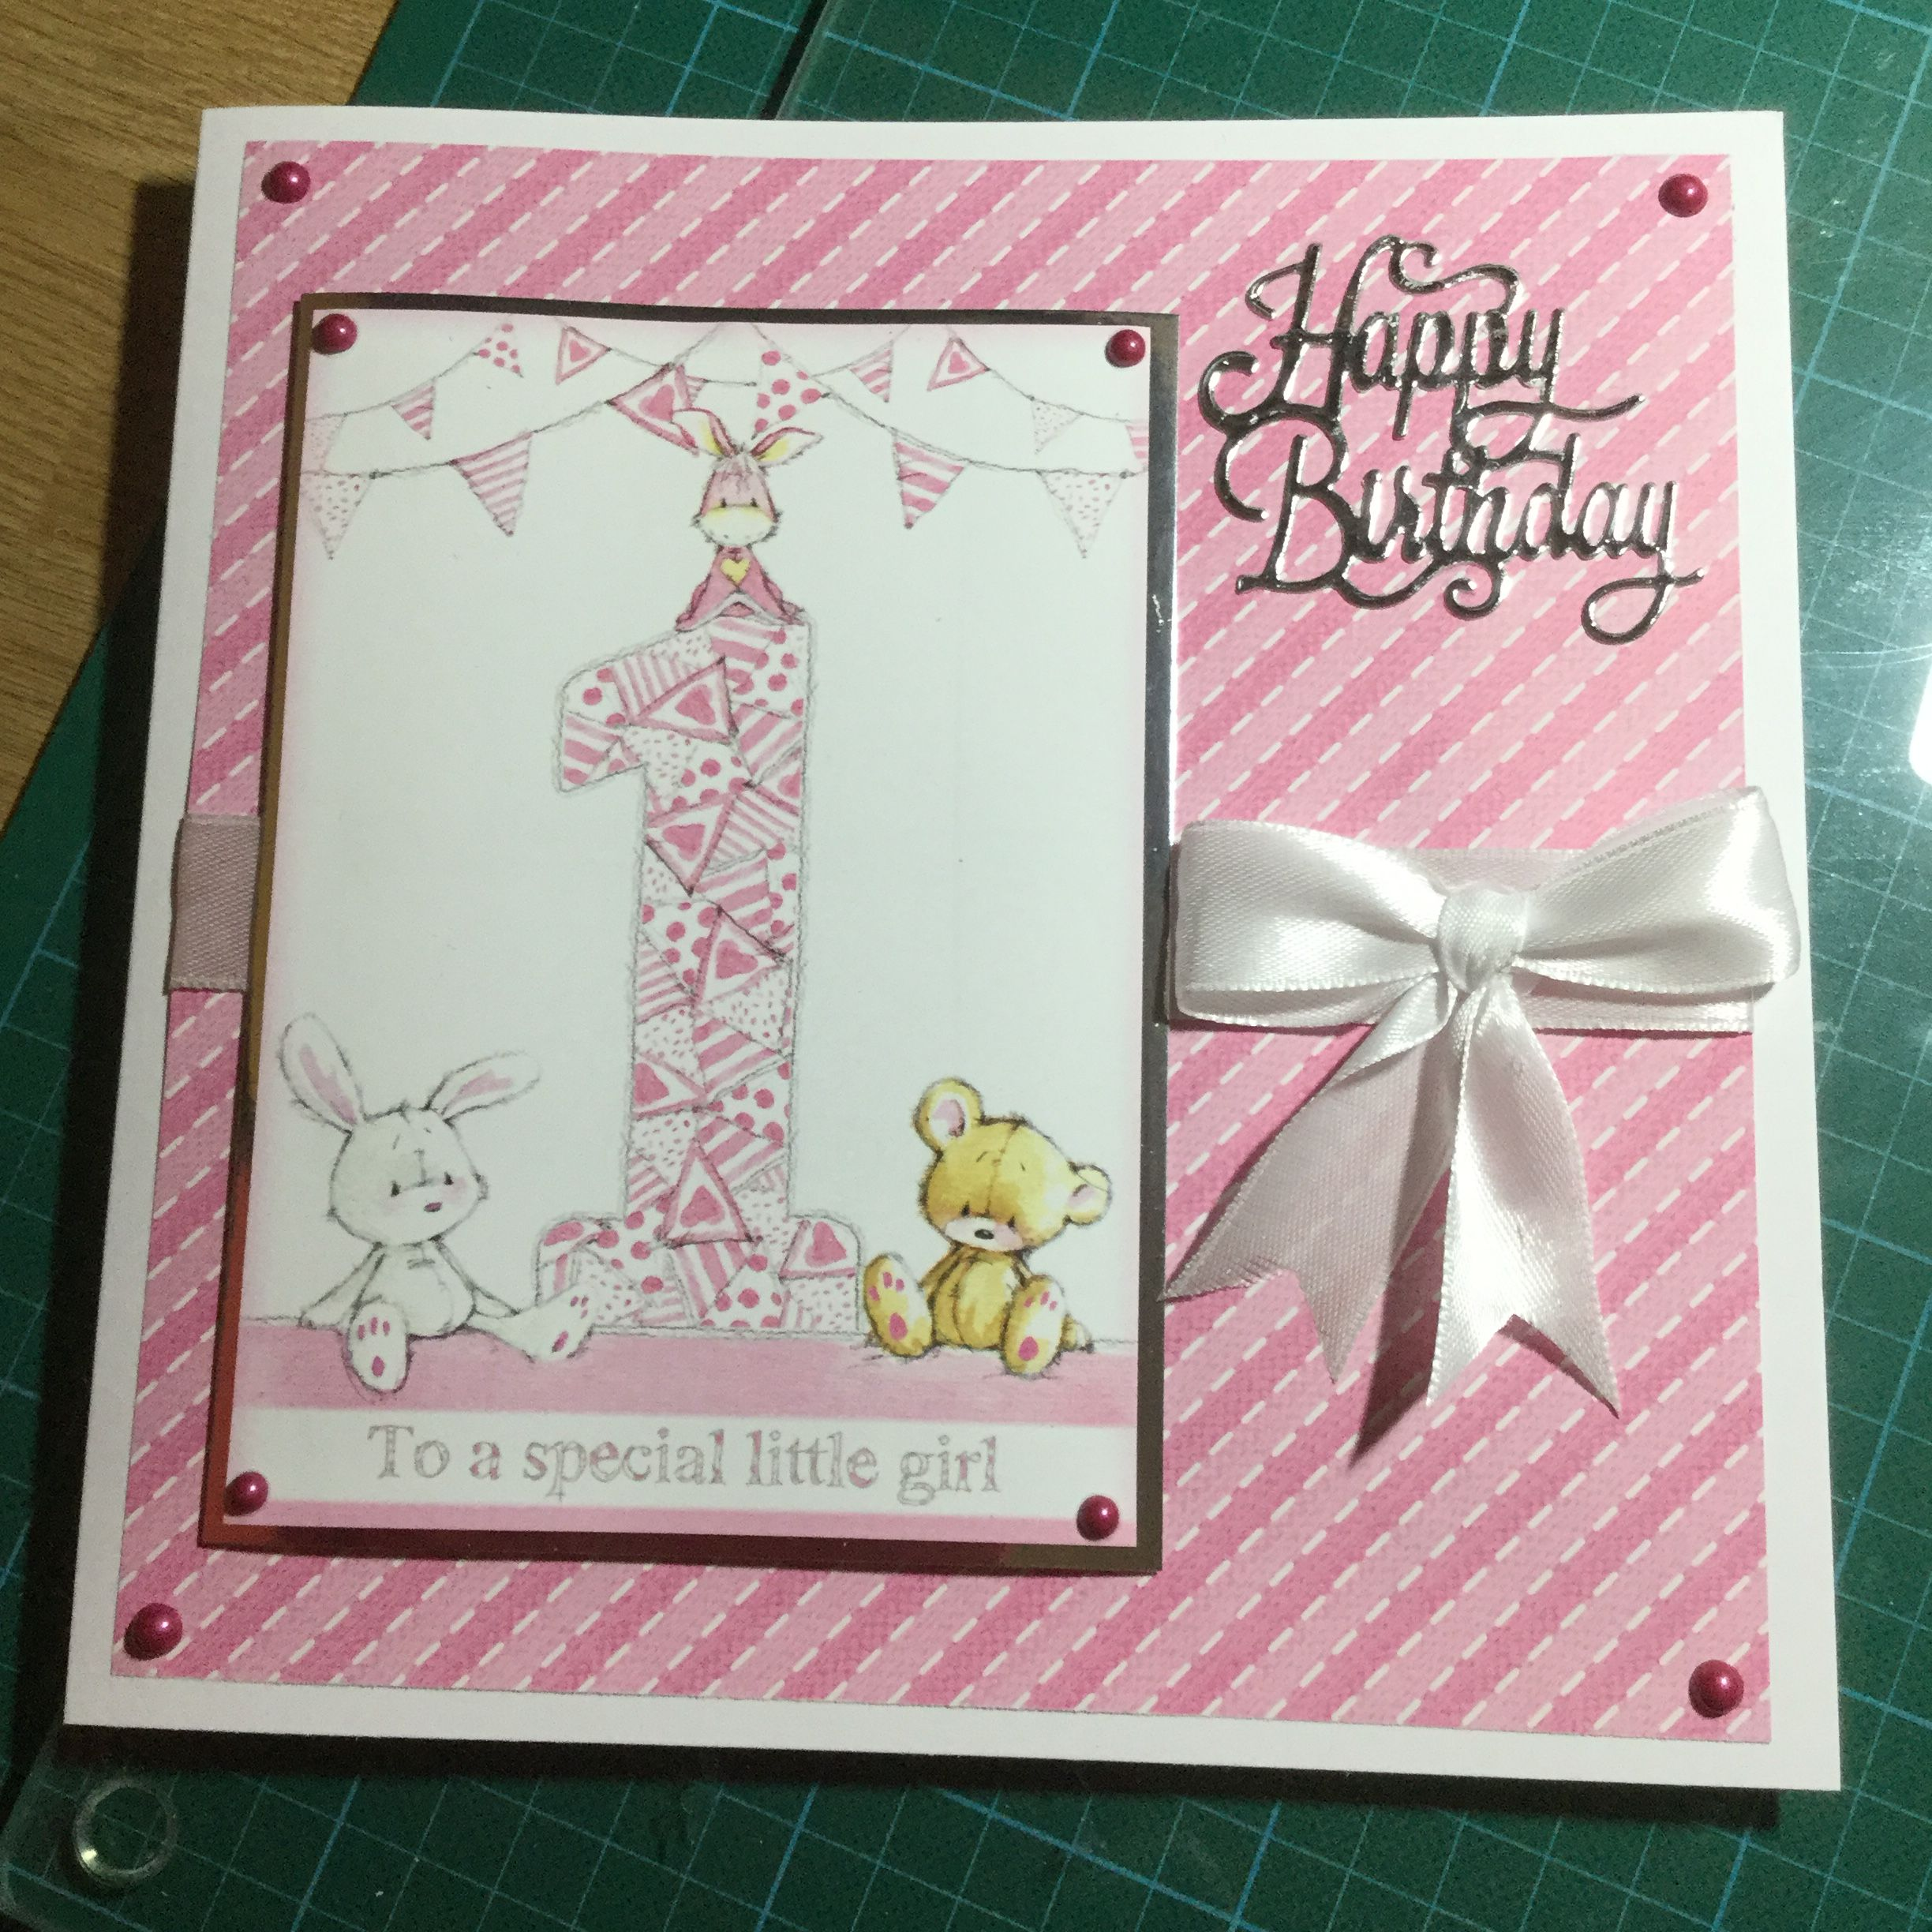 1st Birthday Card For My Great Granddaughter 1st Birthday Cards Handmade Card Making Birthday Cards